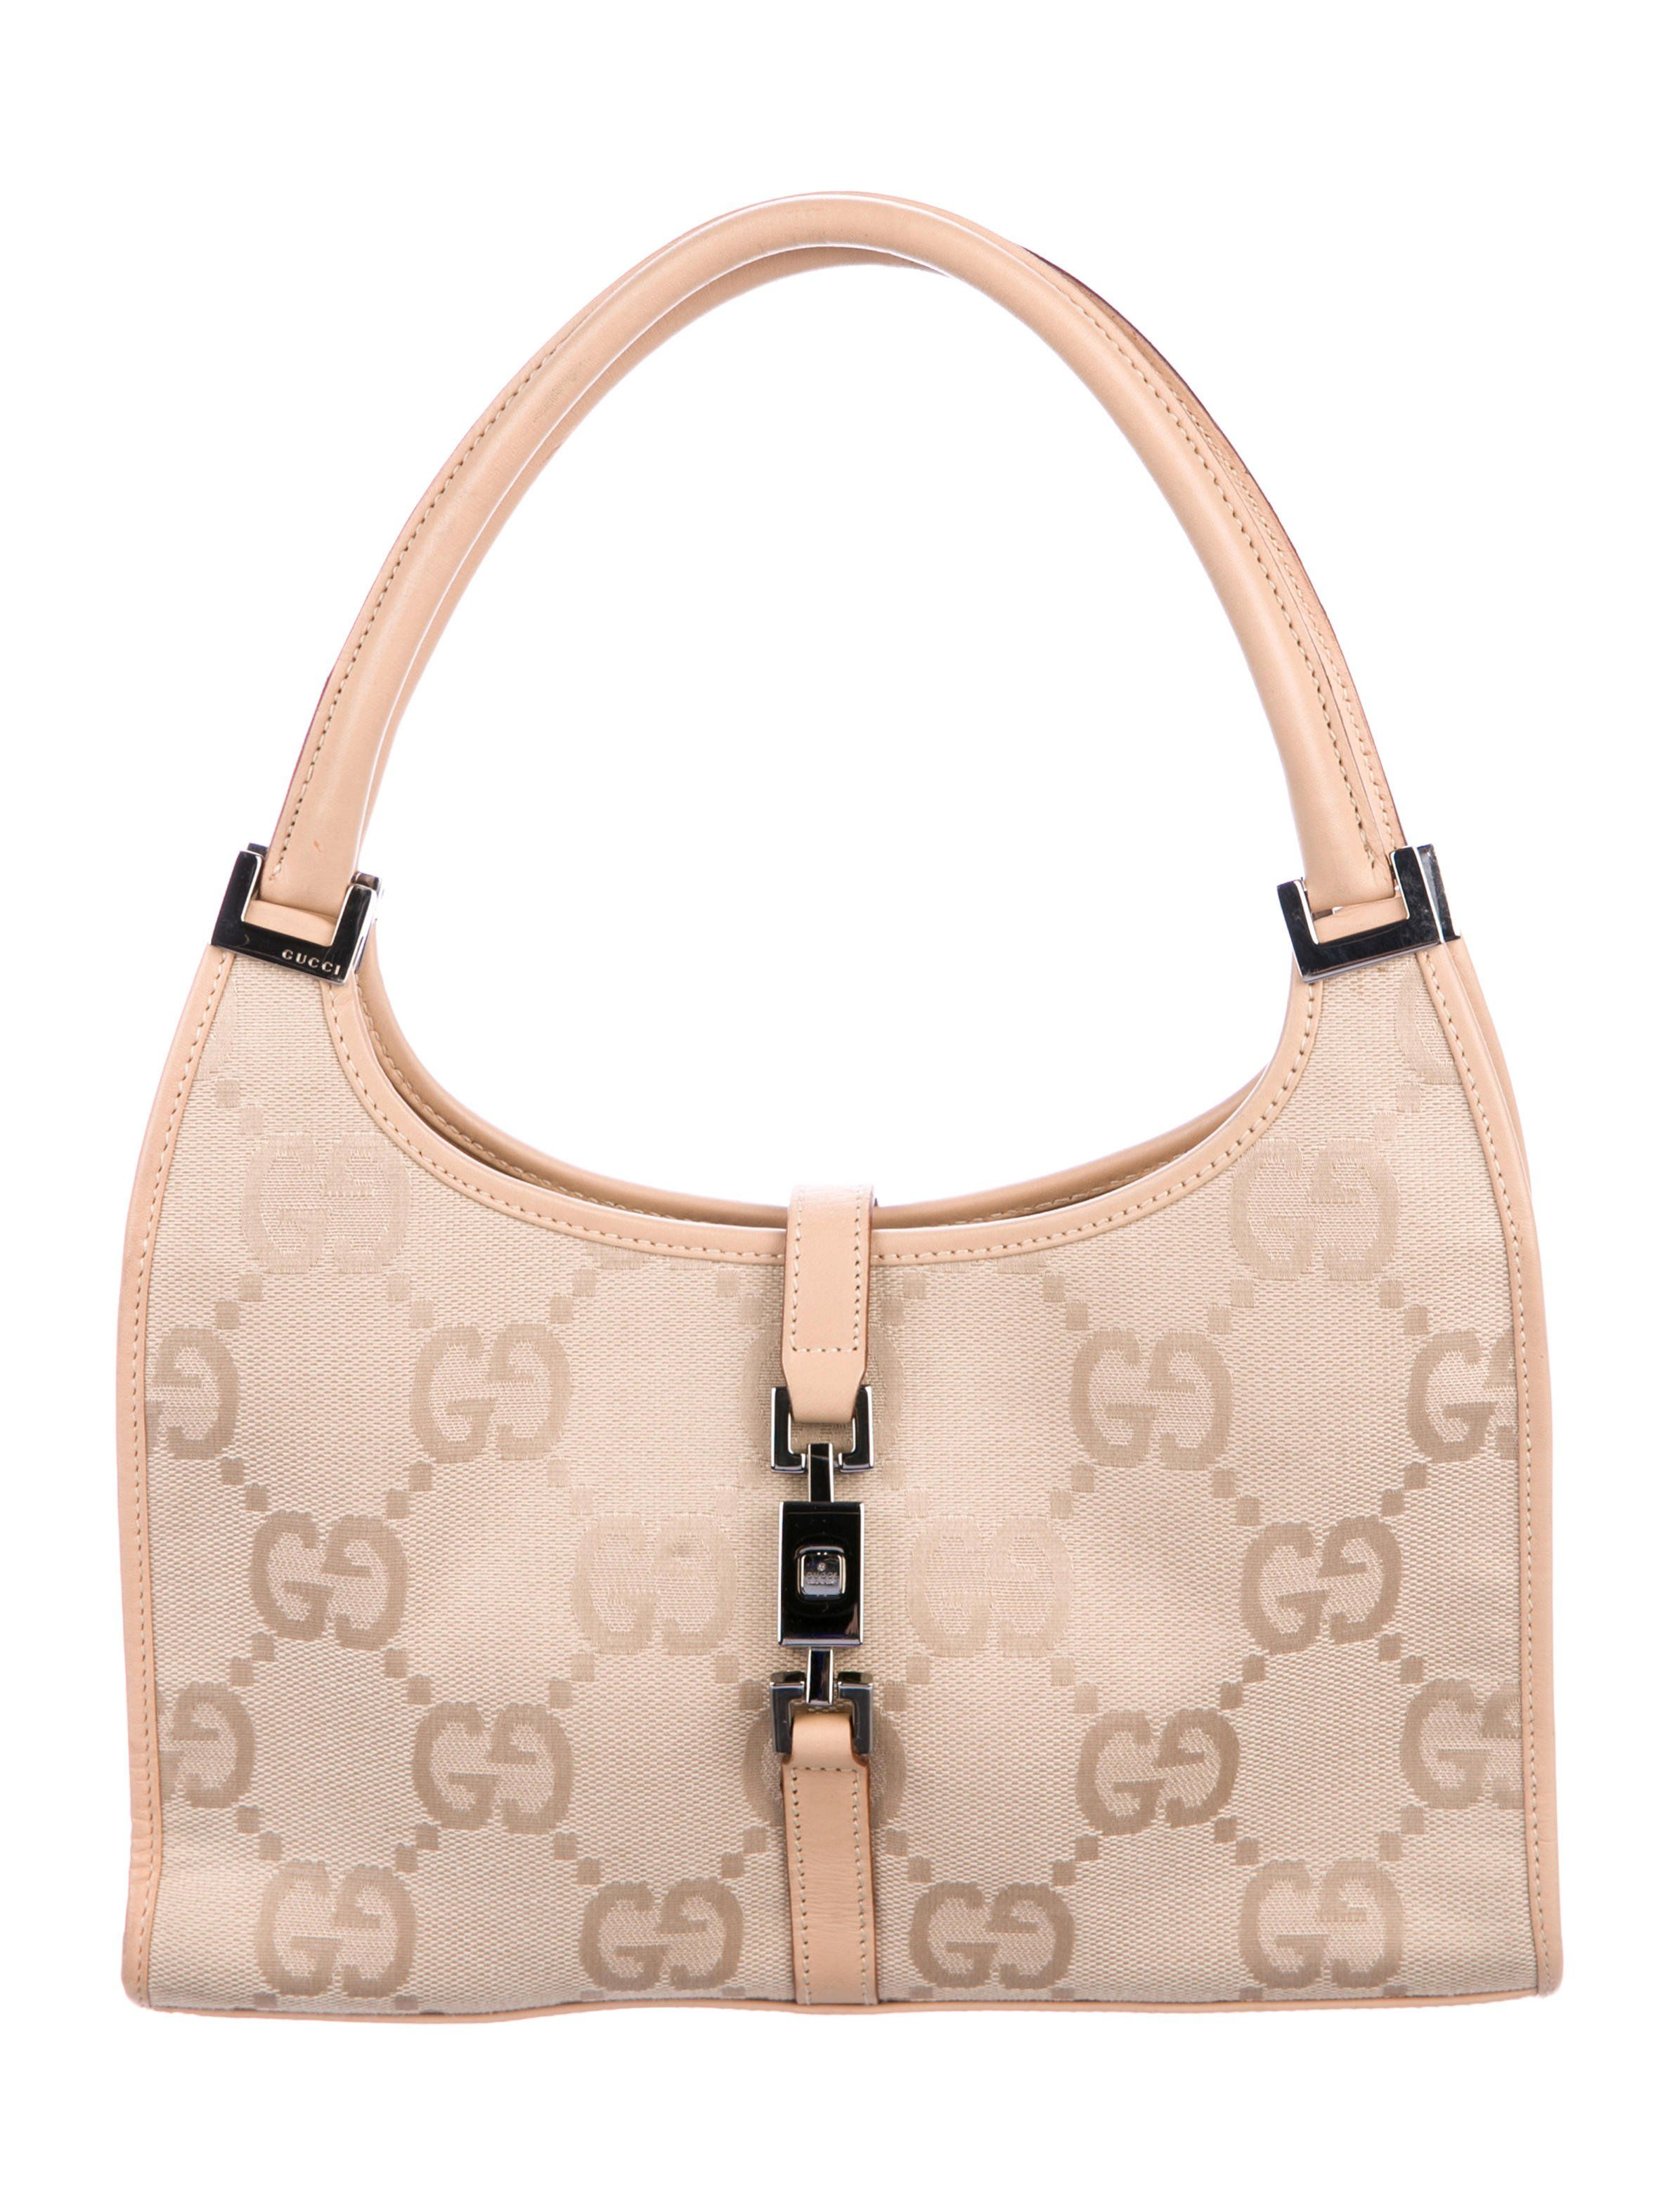 604e1798a17 Beige and tan GG canvas Gucci Jackie tote with silver-tone hardware